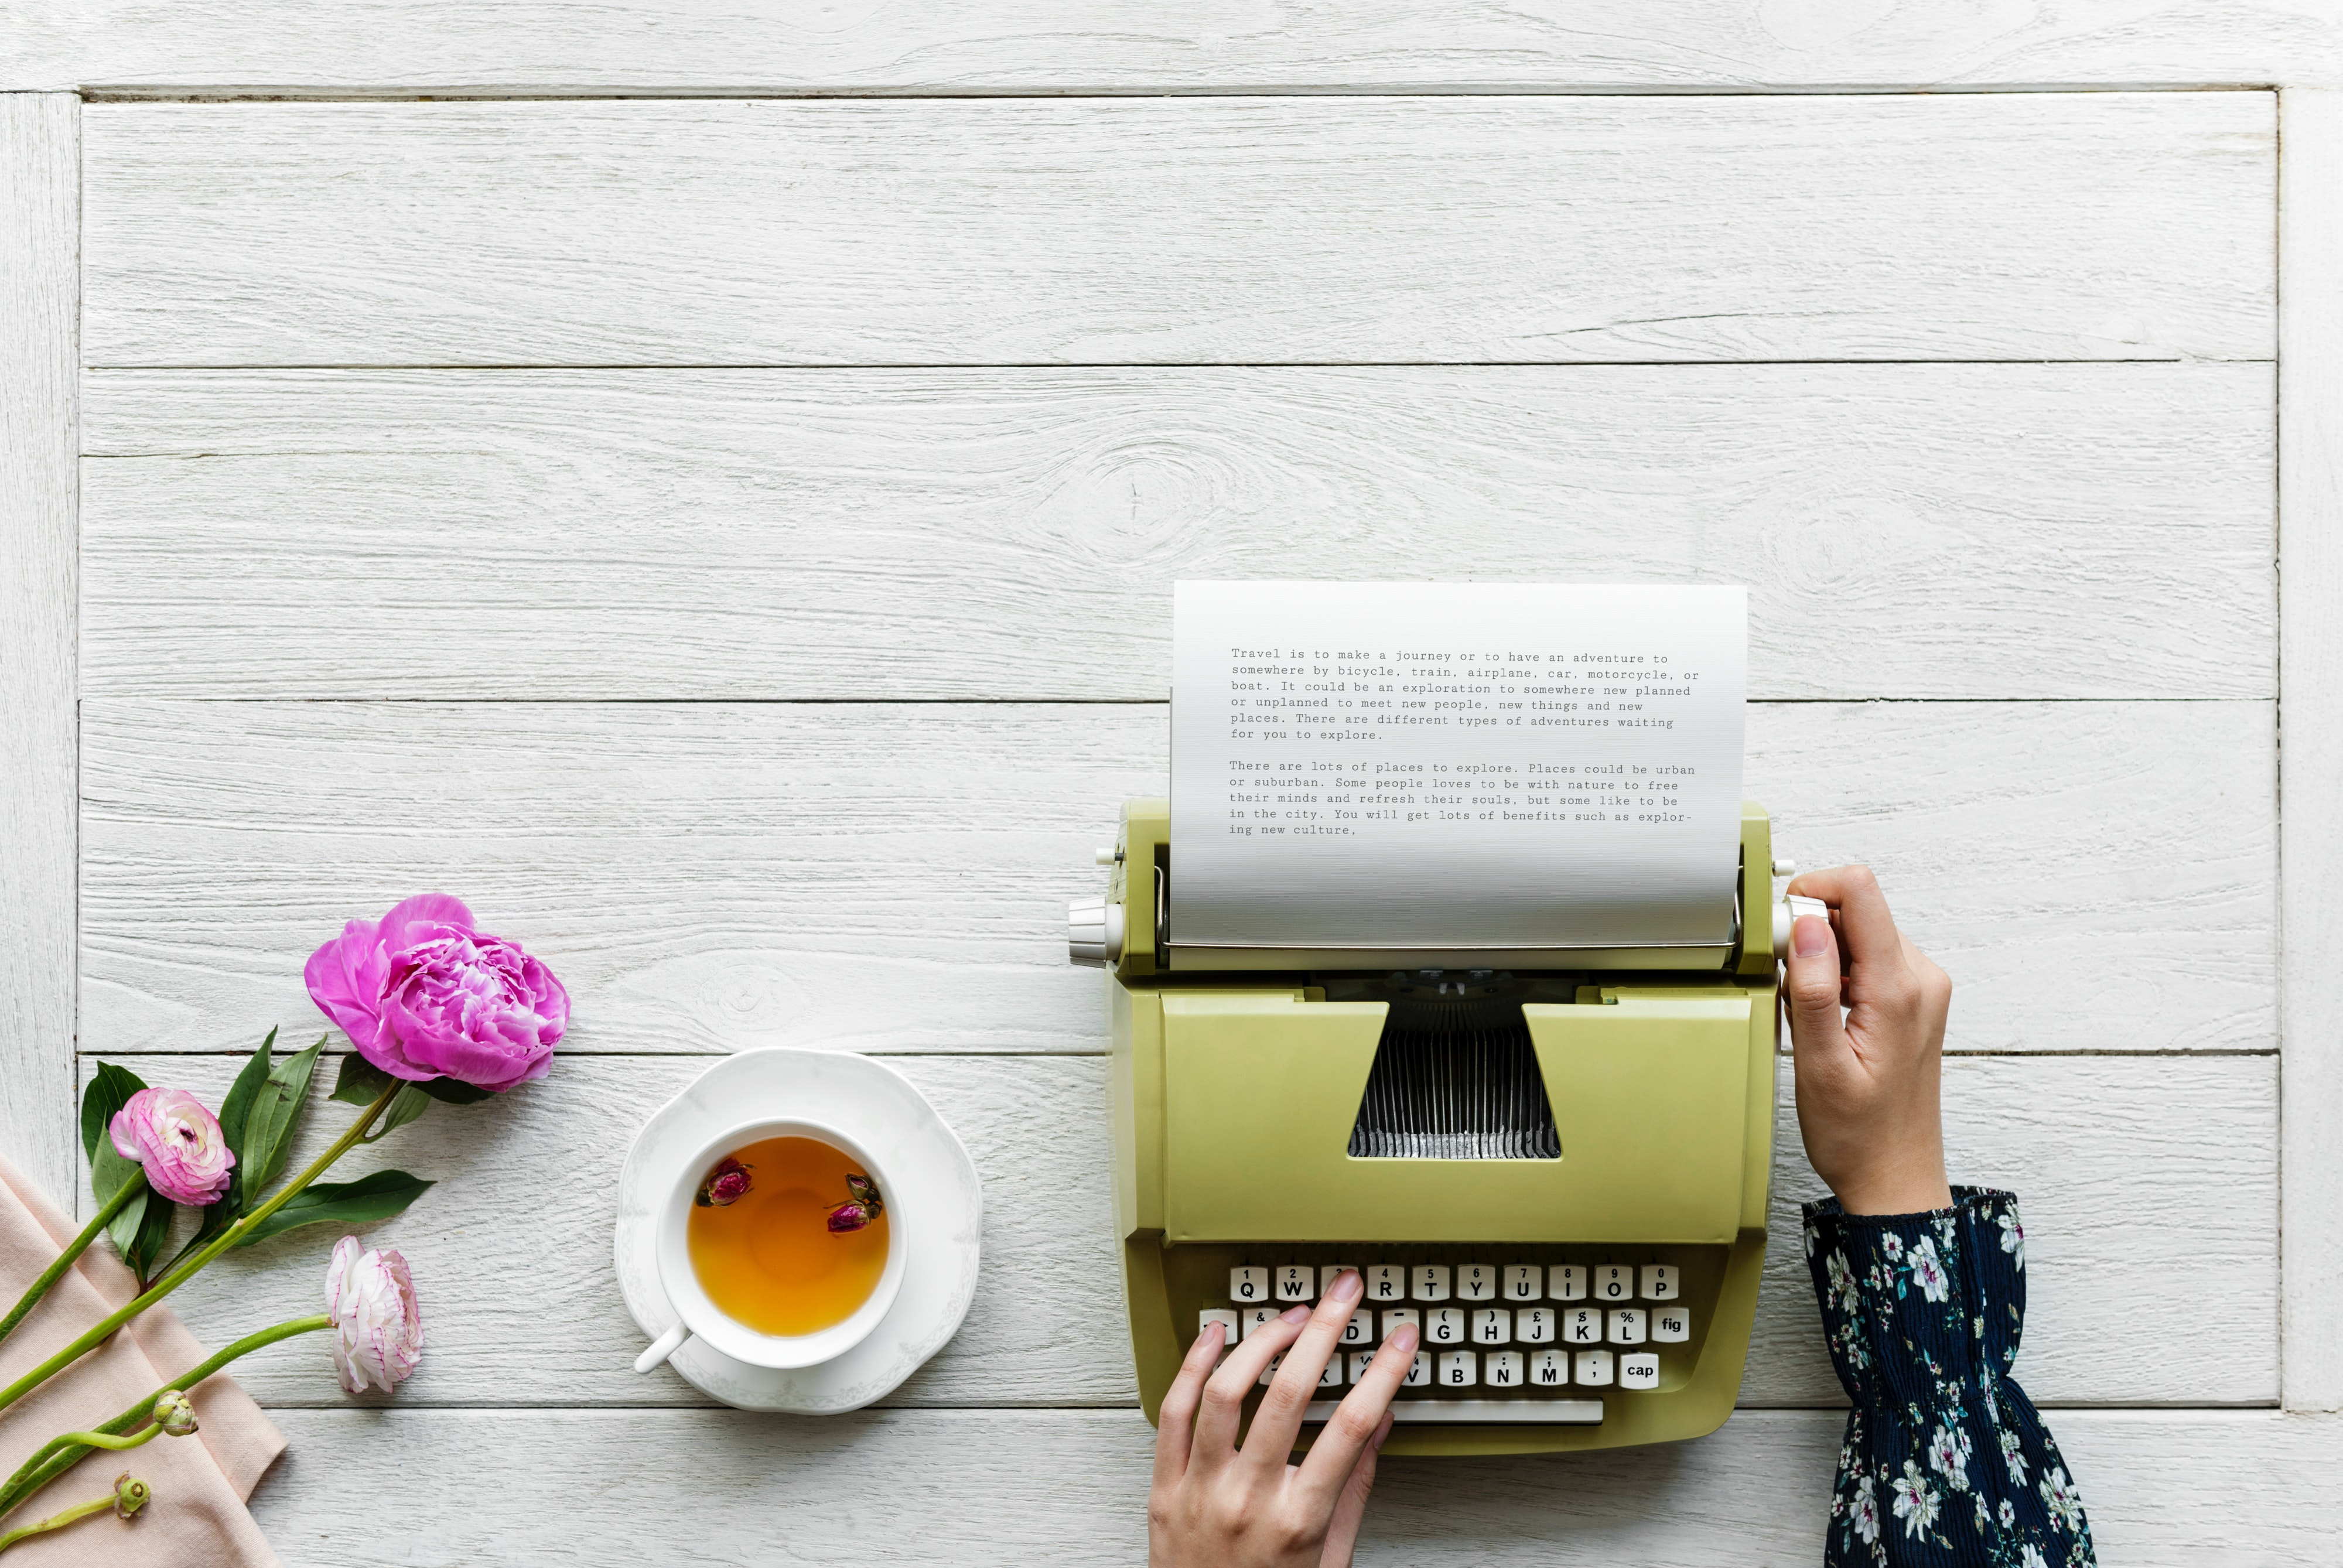 Picture of hands putting paper through a green typewriter. To the left is a cup of tea and some pink flowers. Photo by rawpixel.com from Pexels